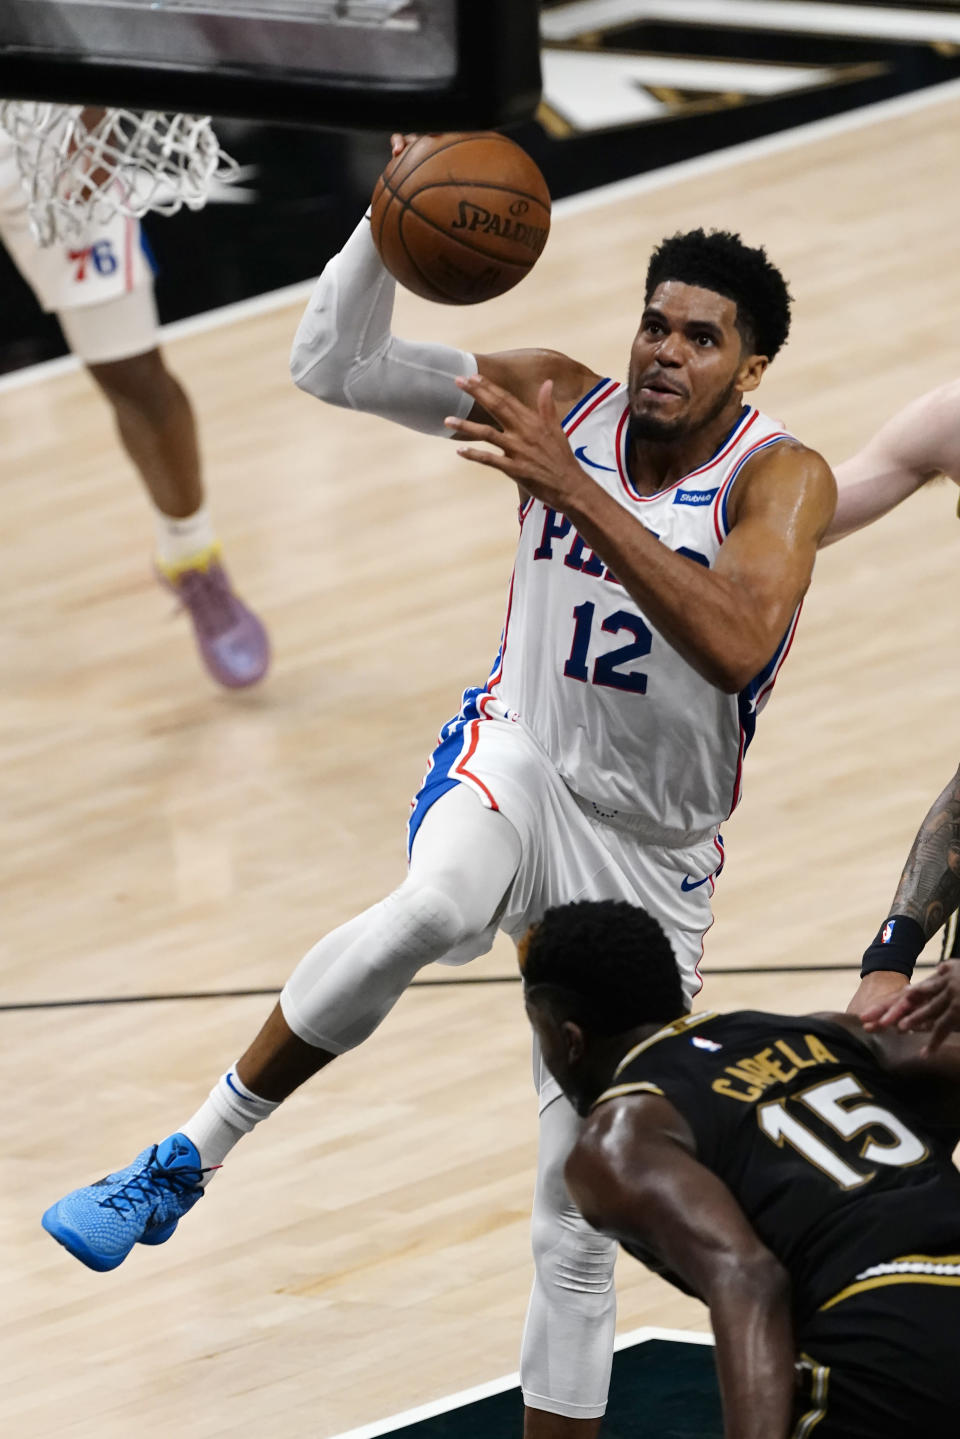 Philadelphia 76ers forward Gary Clark (12) drives to the basket as Atlanta Hawks center Clint Capela (15) defends during the first half of Game 6 of an NBA basketball Eastern Conference semifinal series Friday, June 18, 2021, in Atlanta. (AP Photo/John Bazemore)